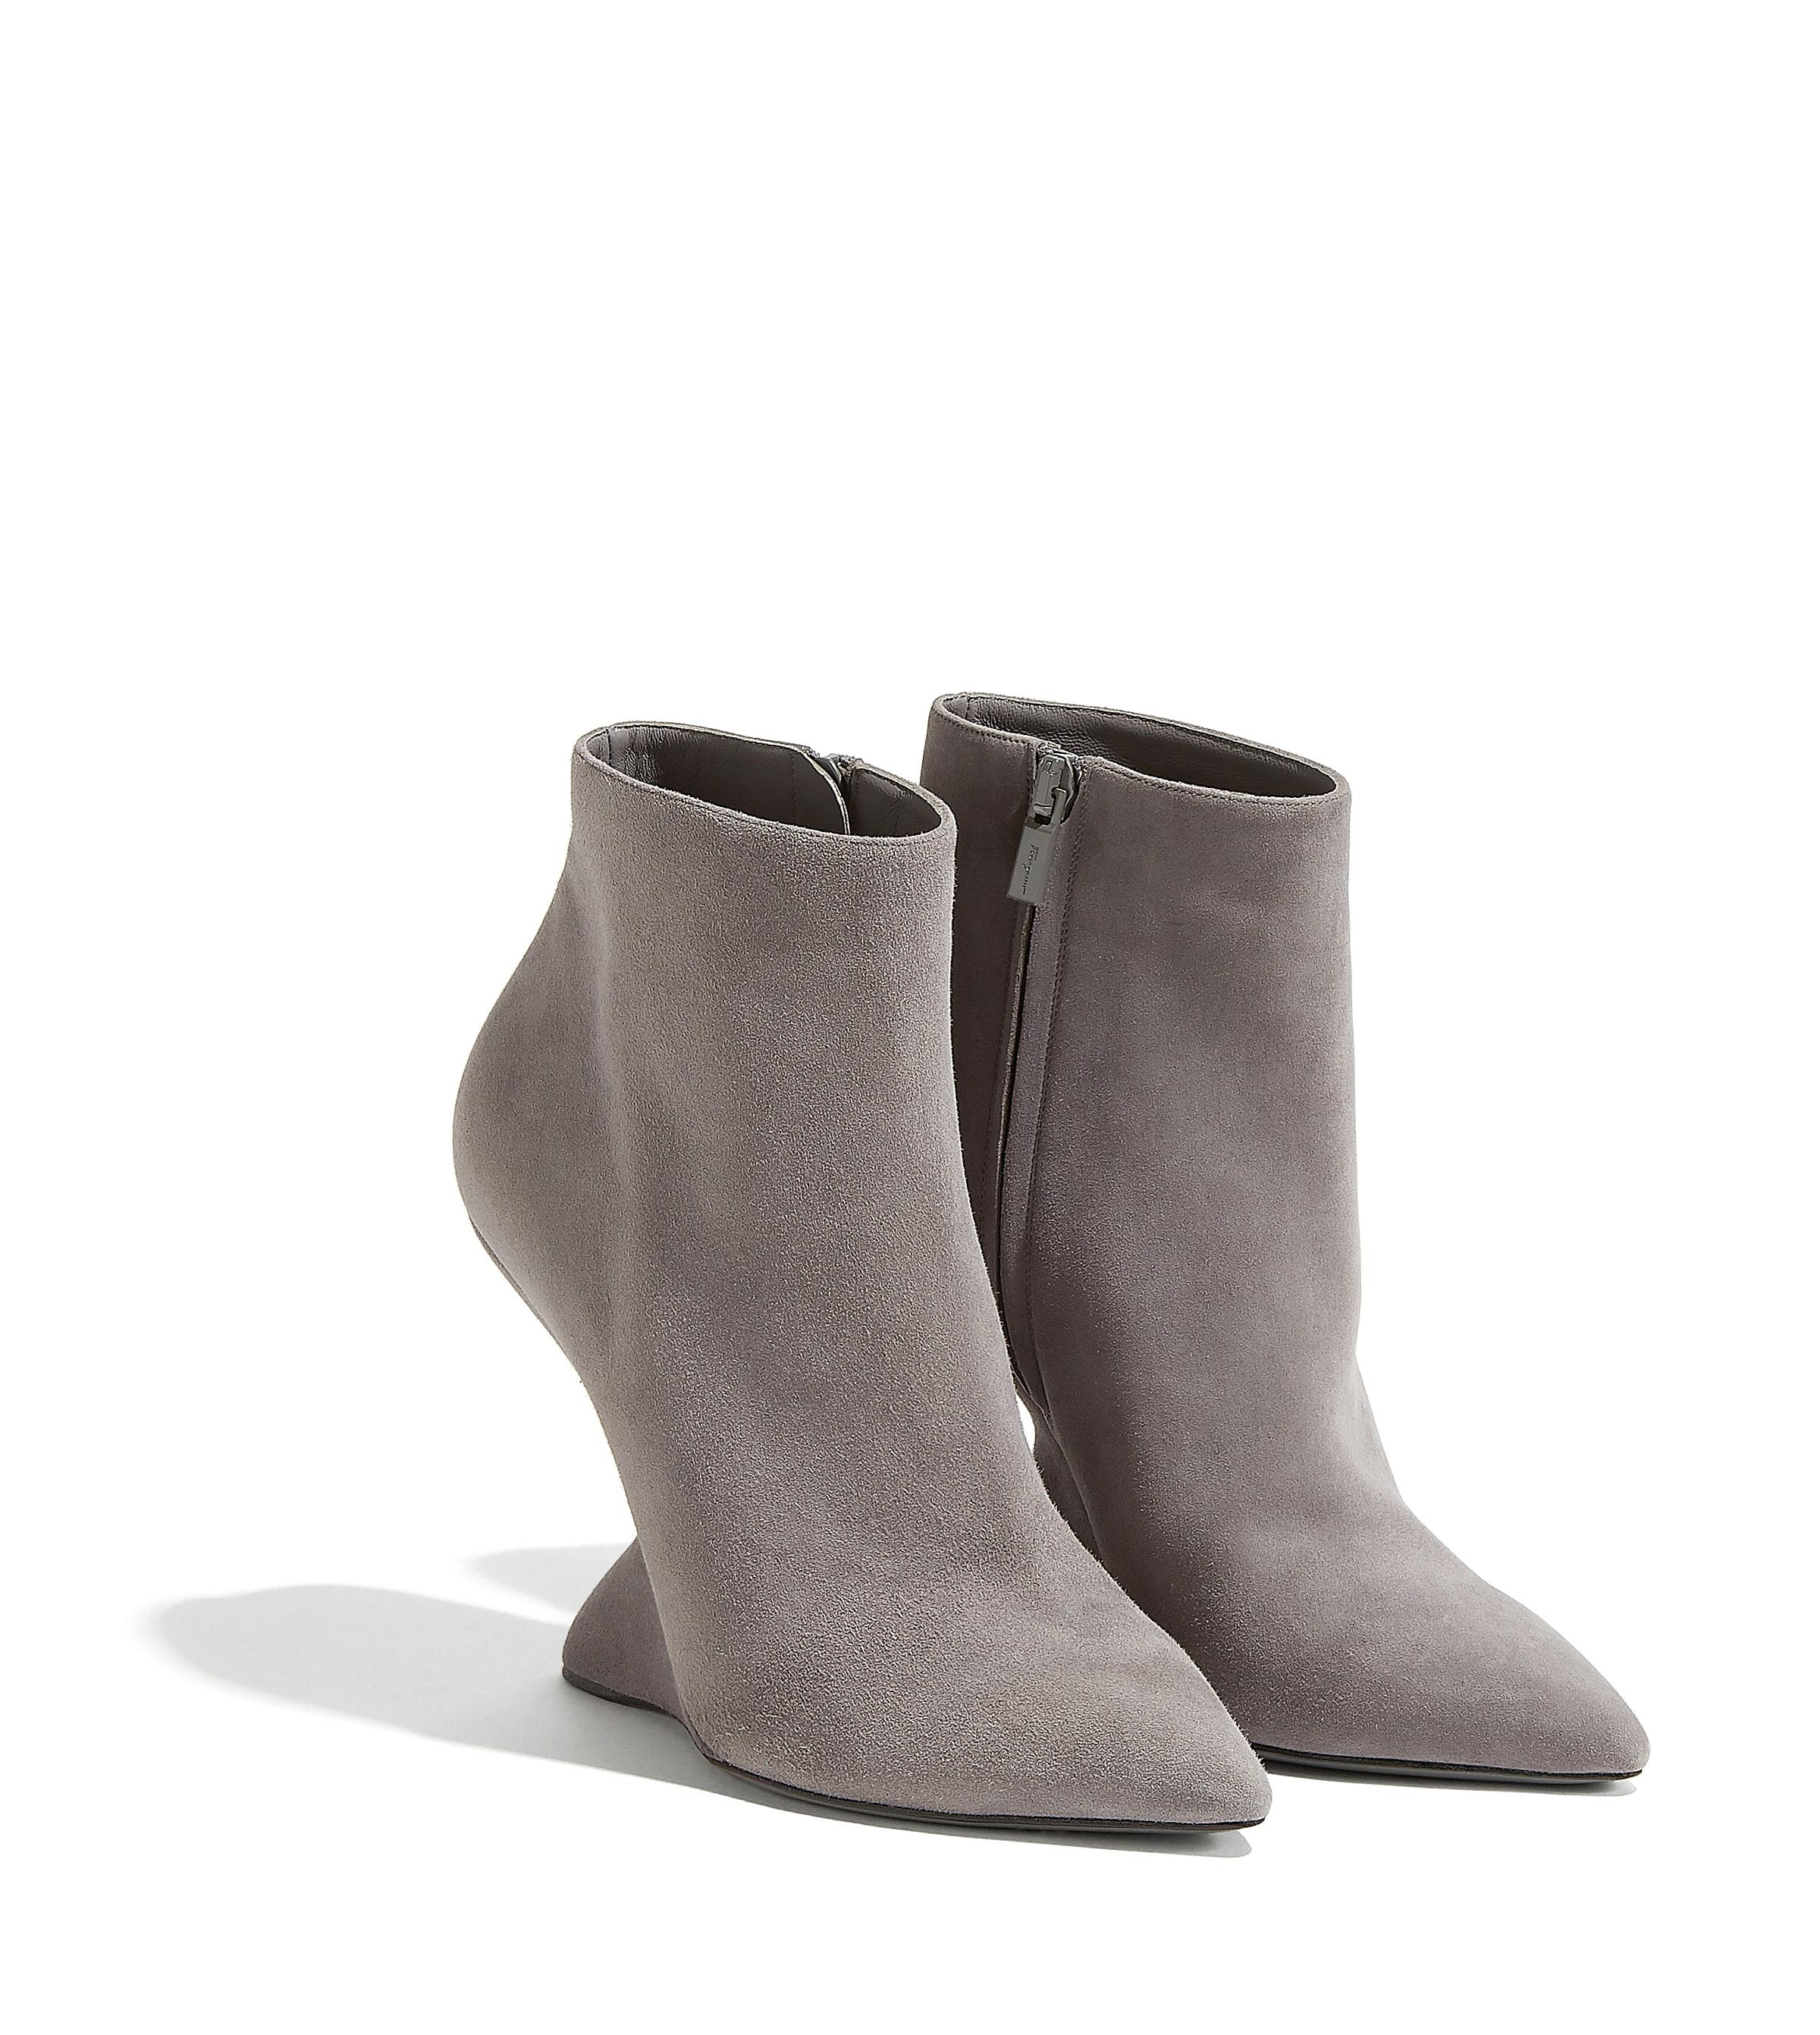 1e8e75d53541 Lyst - Ferragamo F Wedge Bootie in Gray